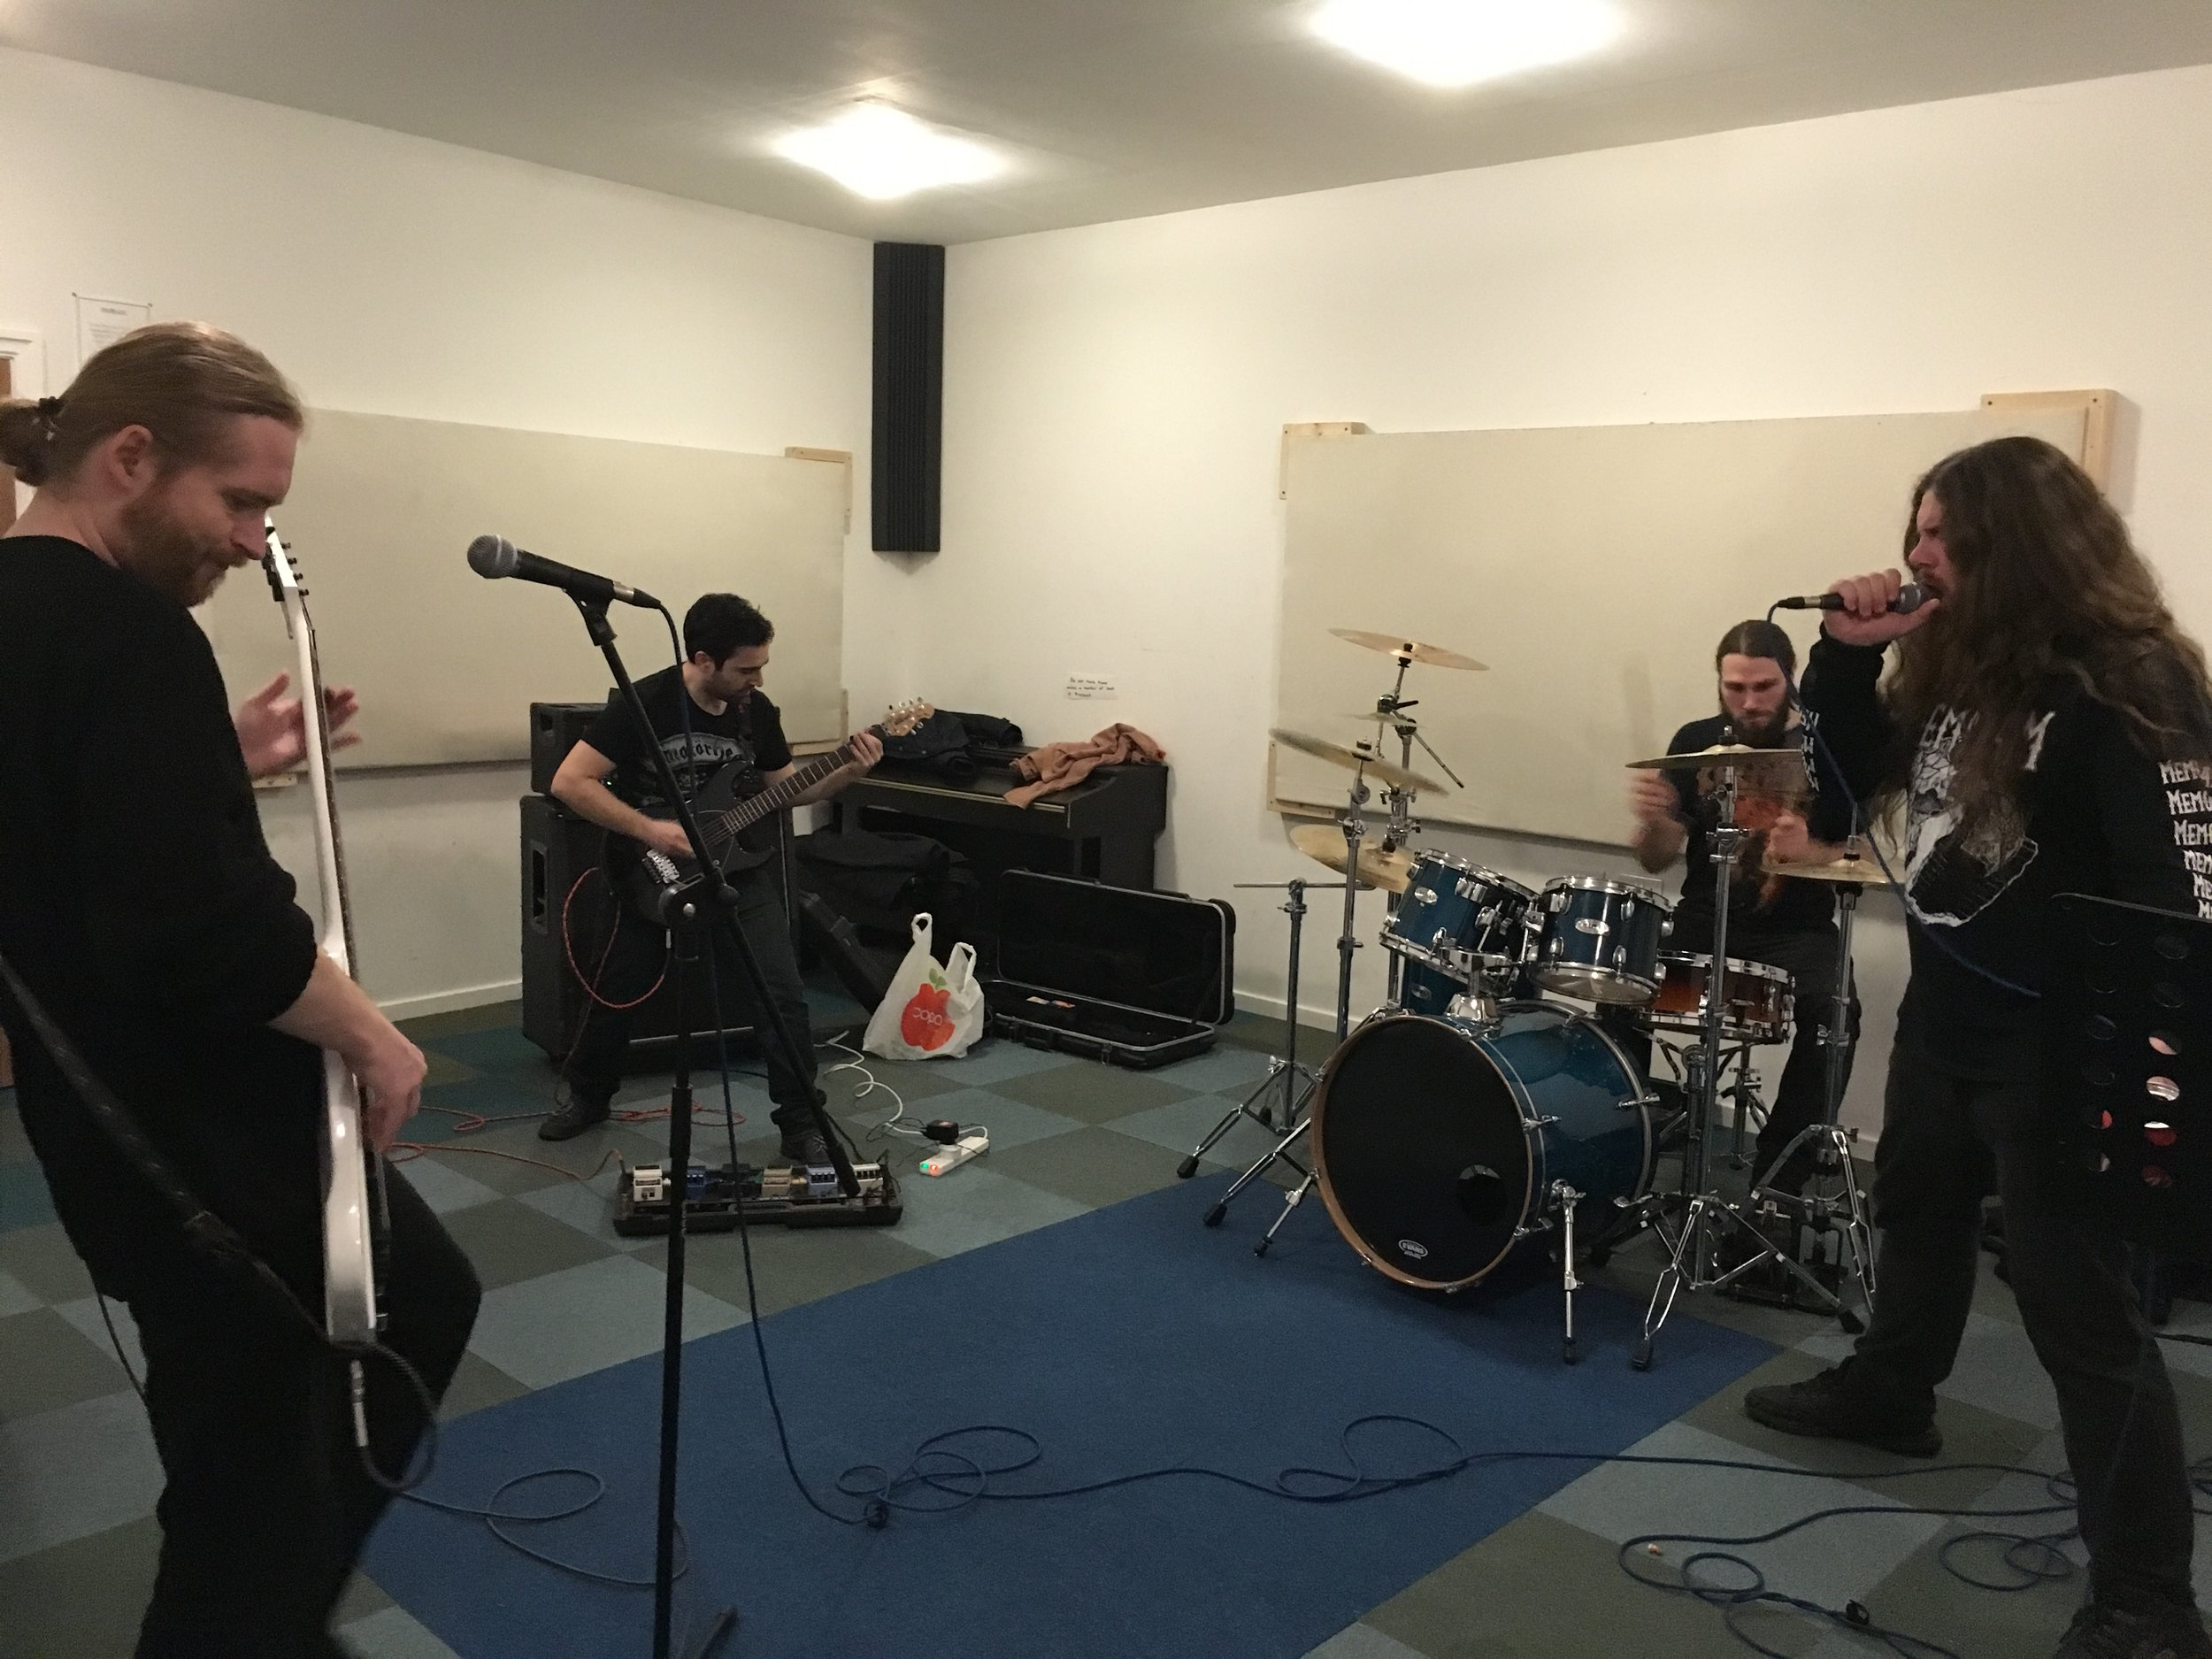 Stormrider rocking out in Practice Room 1